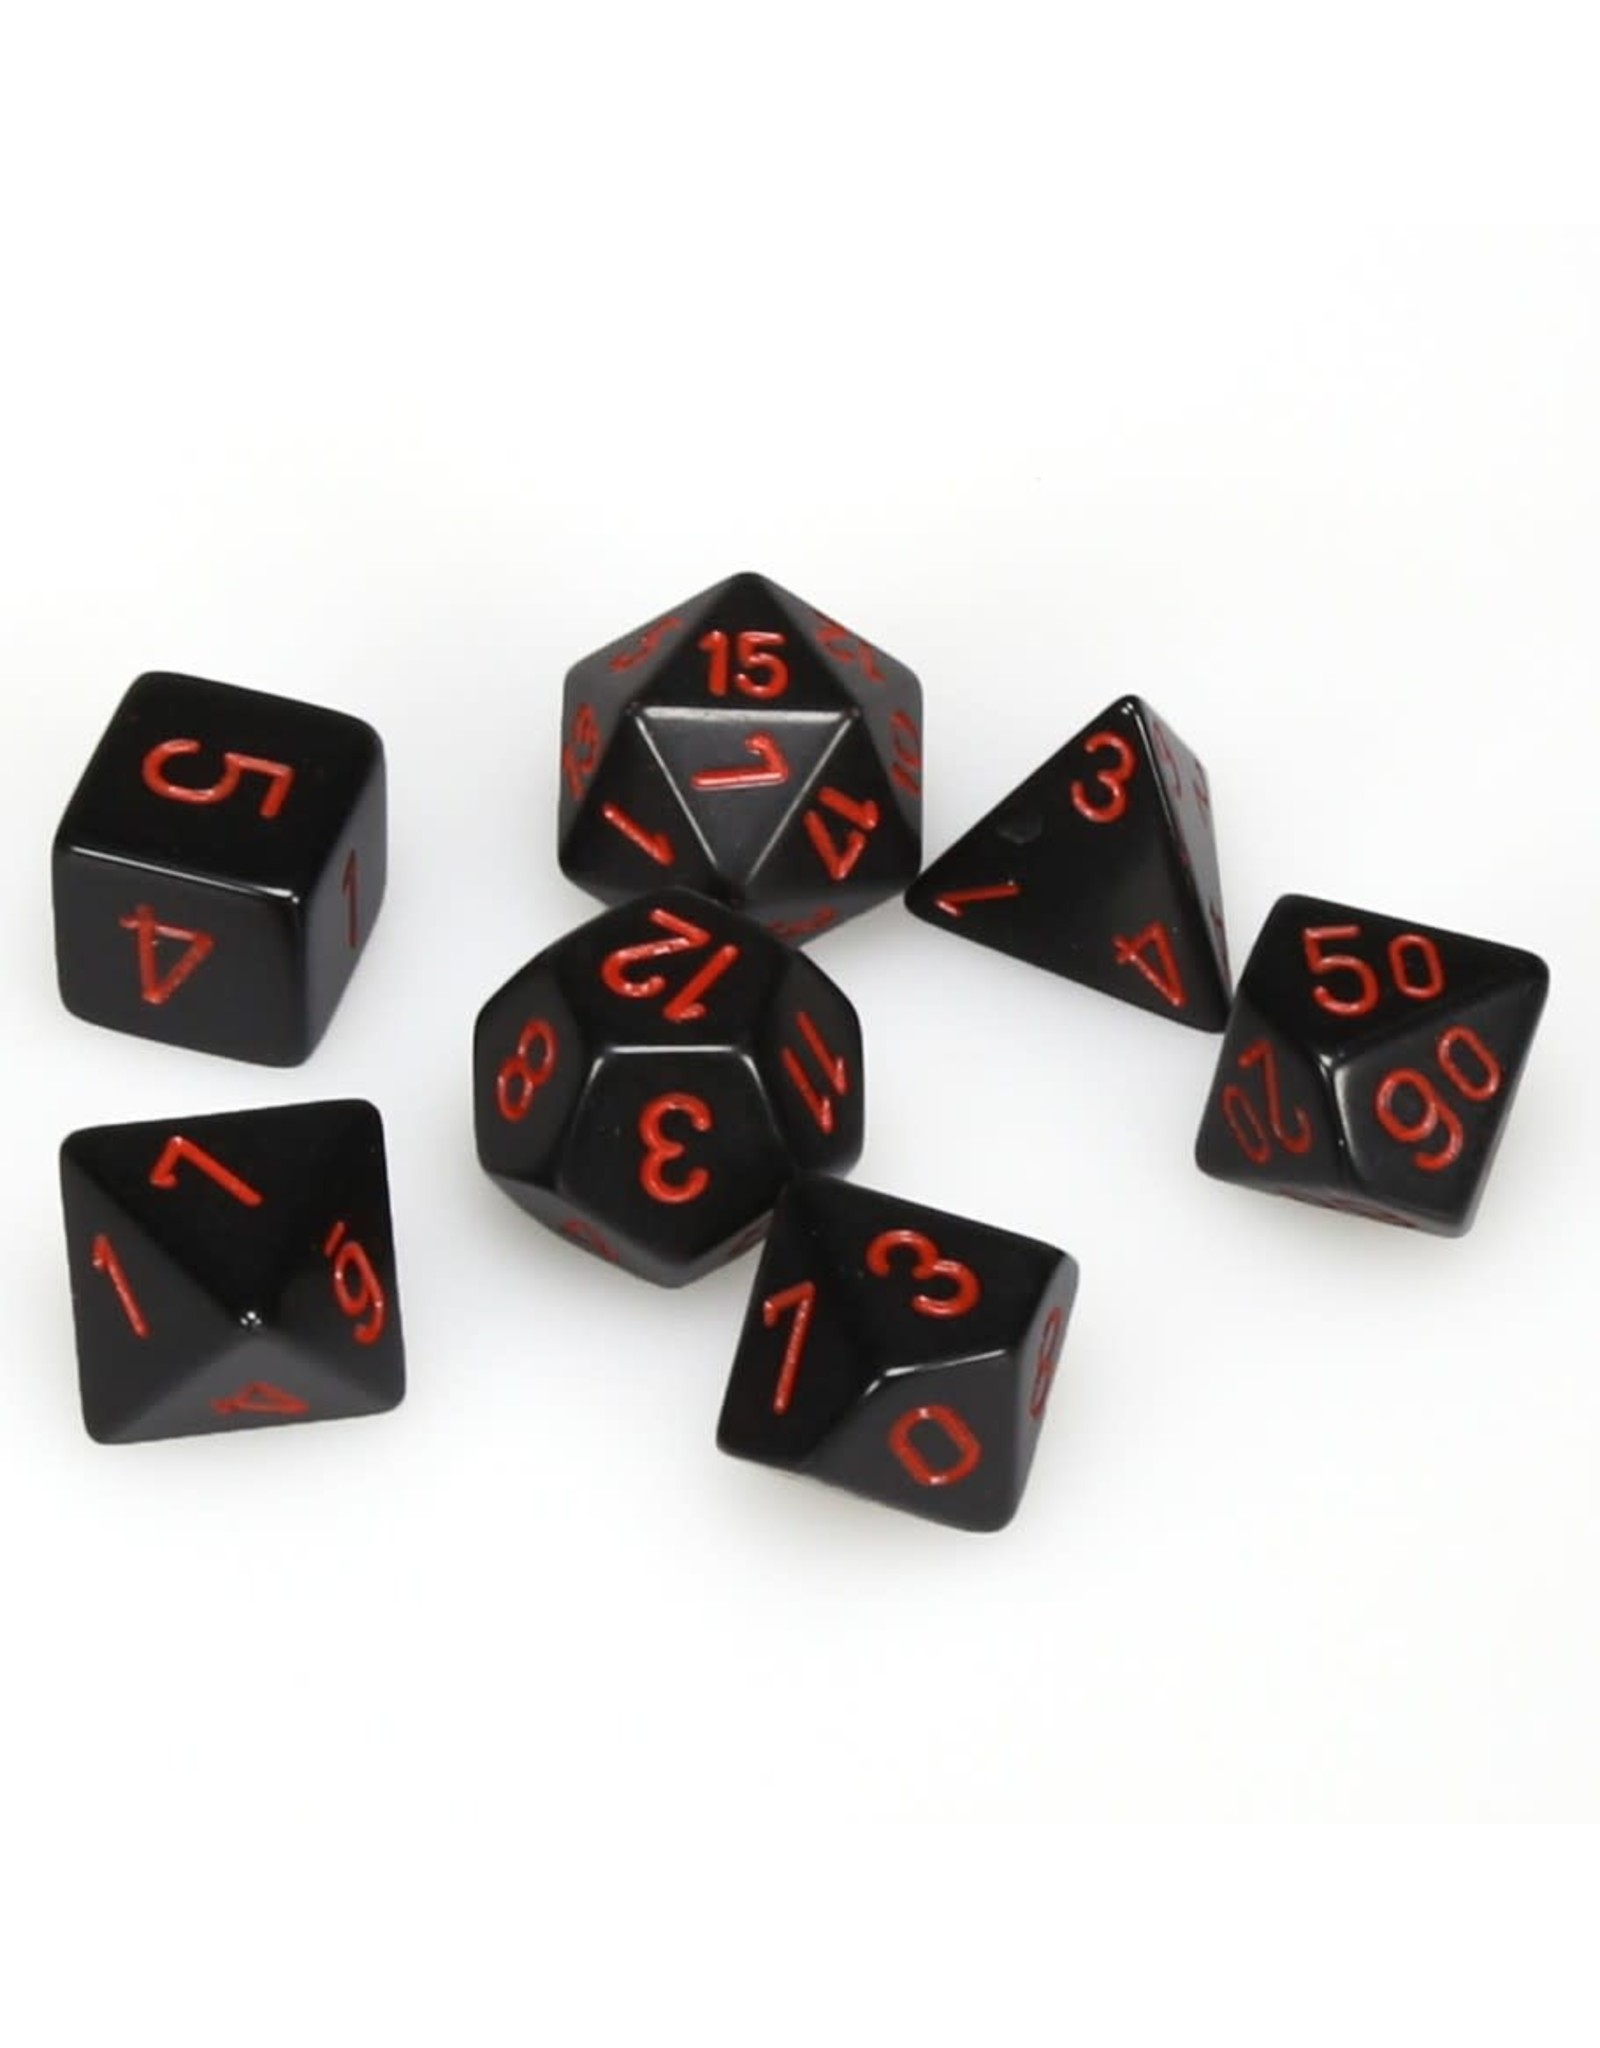 Chessex Polyhedral 7 Dice Set Opaque Black w/Red CHX25418